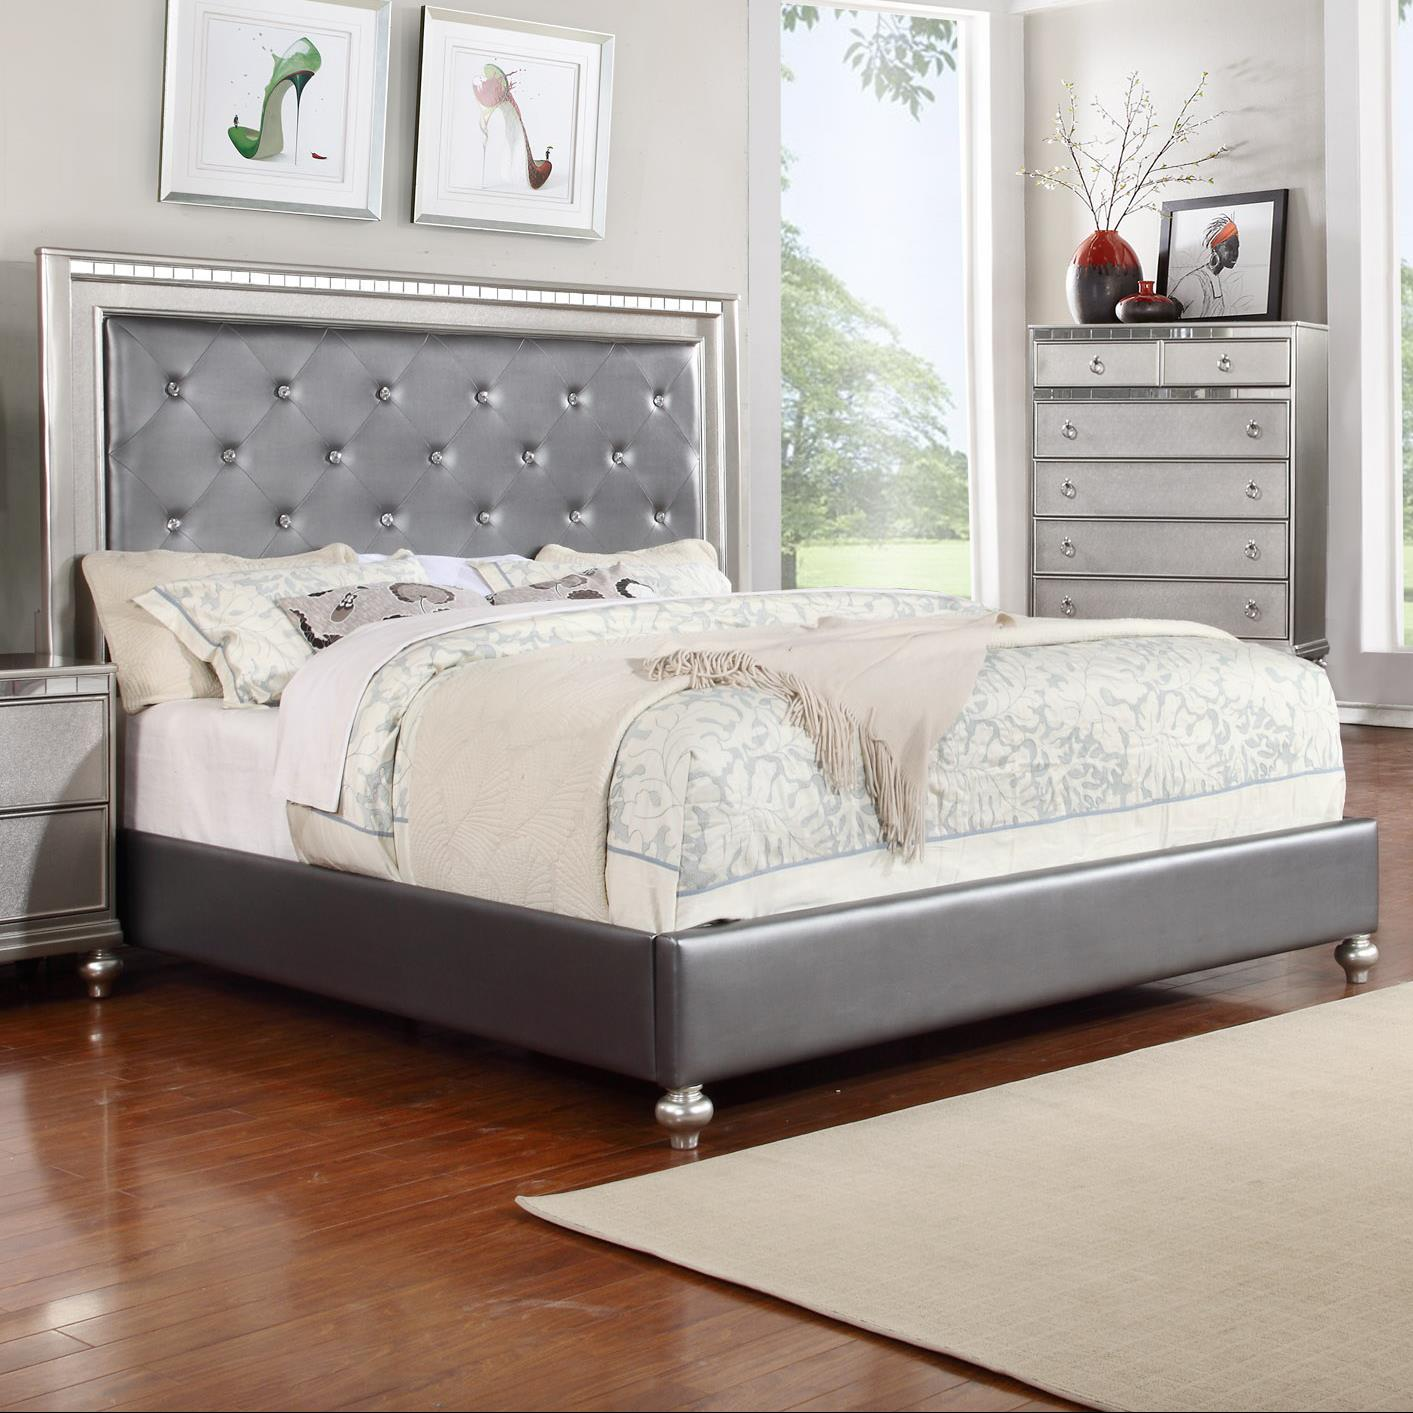 Glam Queen Upholstered Panel Bed With Rhinestone Accent Rotmans Upholstered Bed